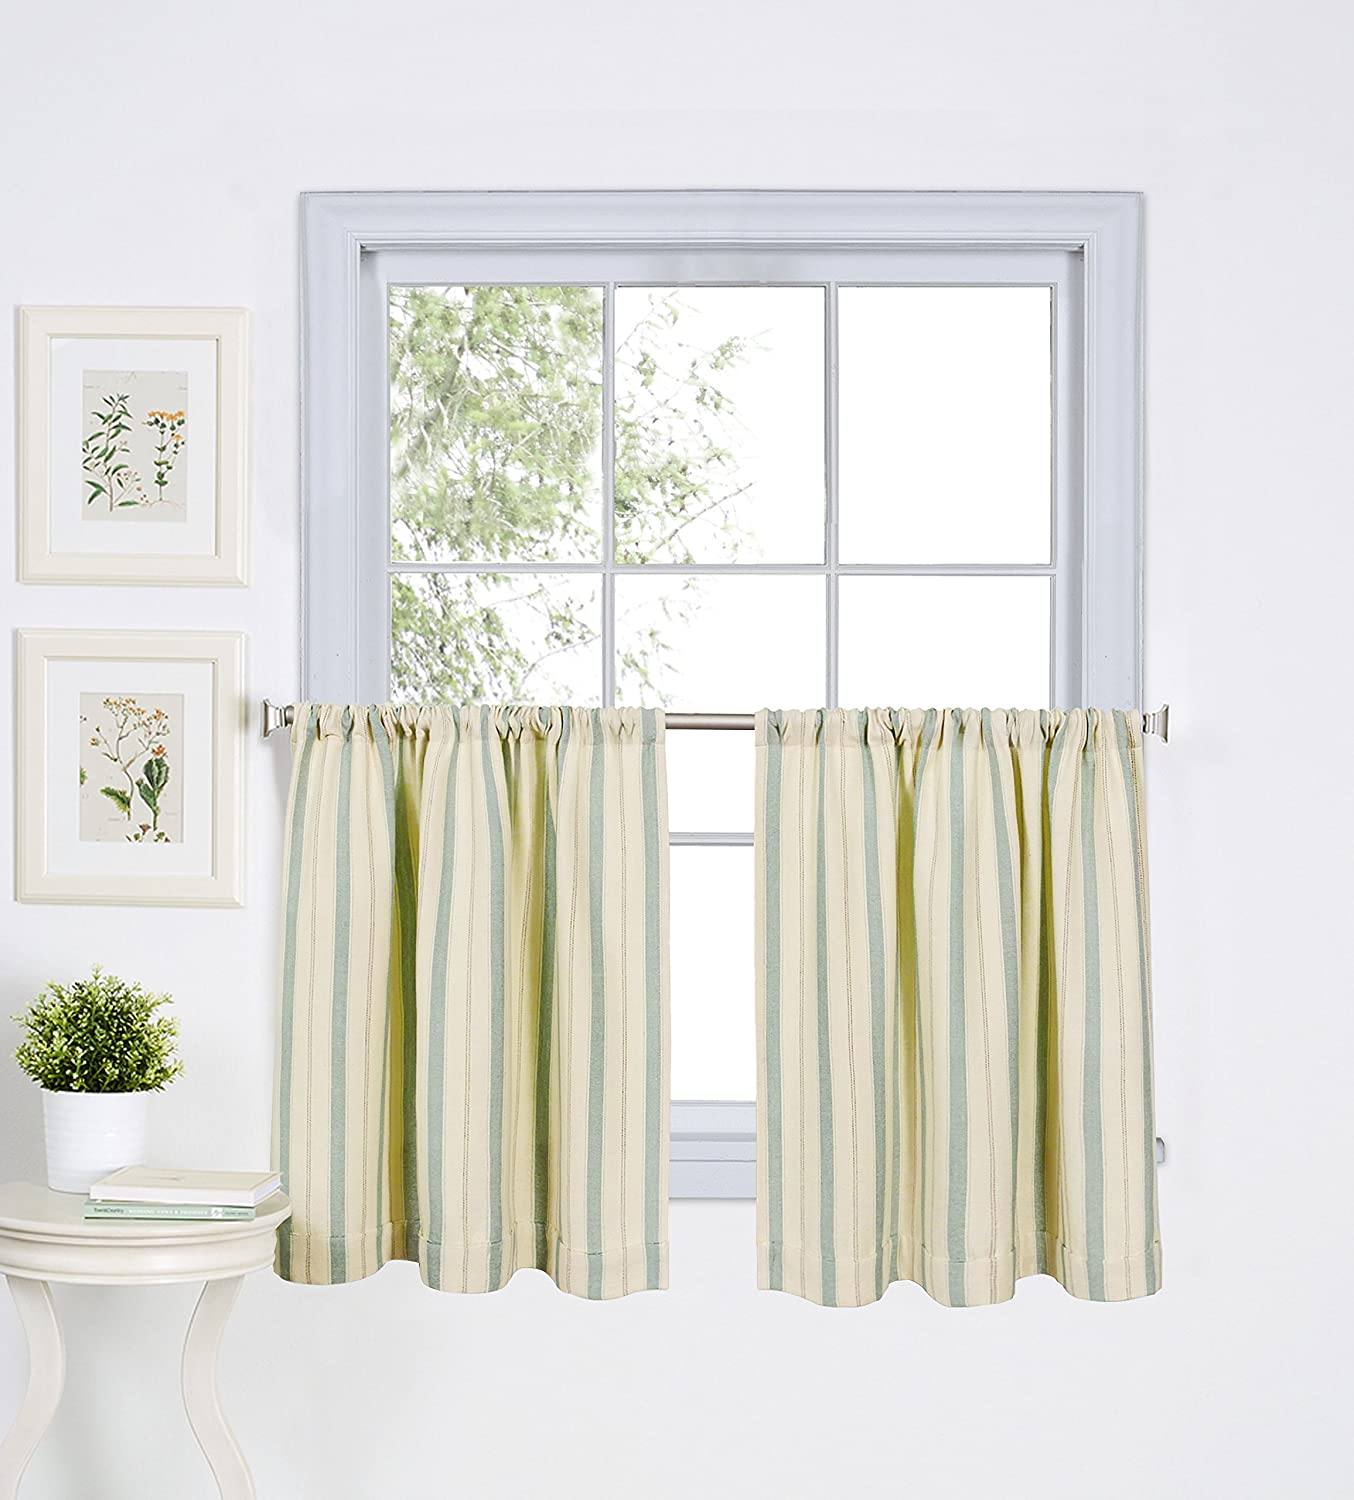 Elrene Home Fashions 026865775631 Rod Pocket Stripe Kitchen/Cafe Tier Window Curtain, Set of 2, 30